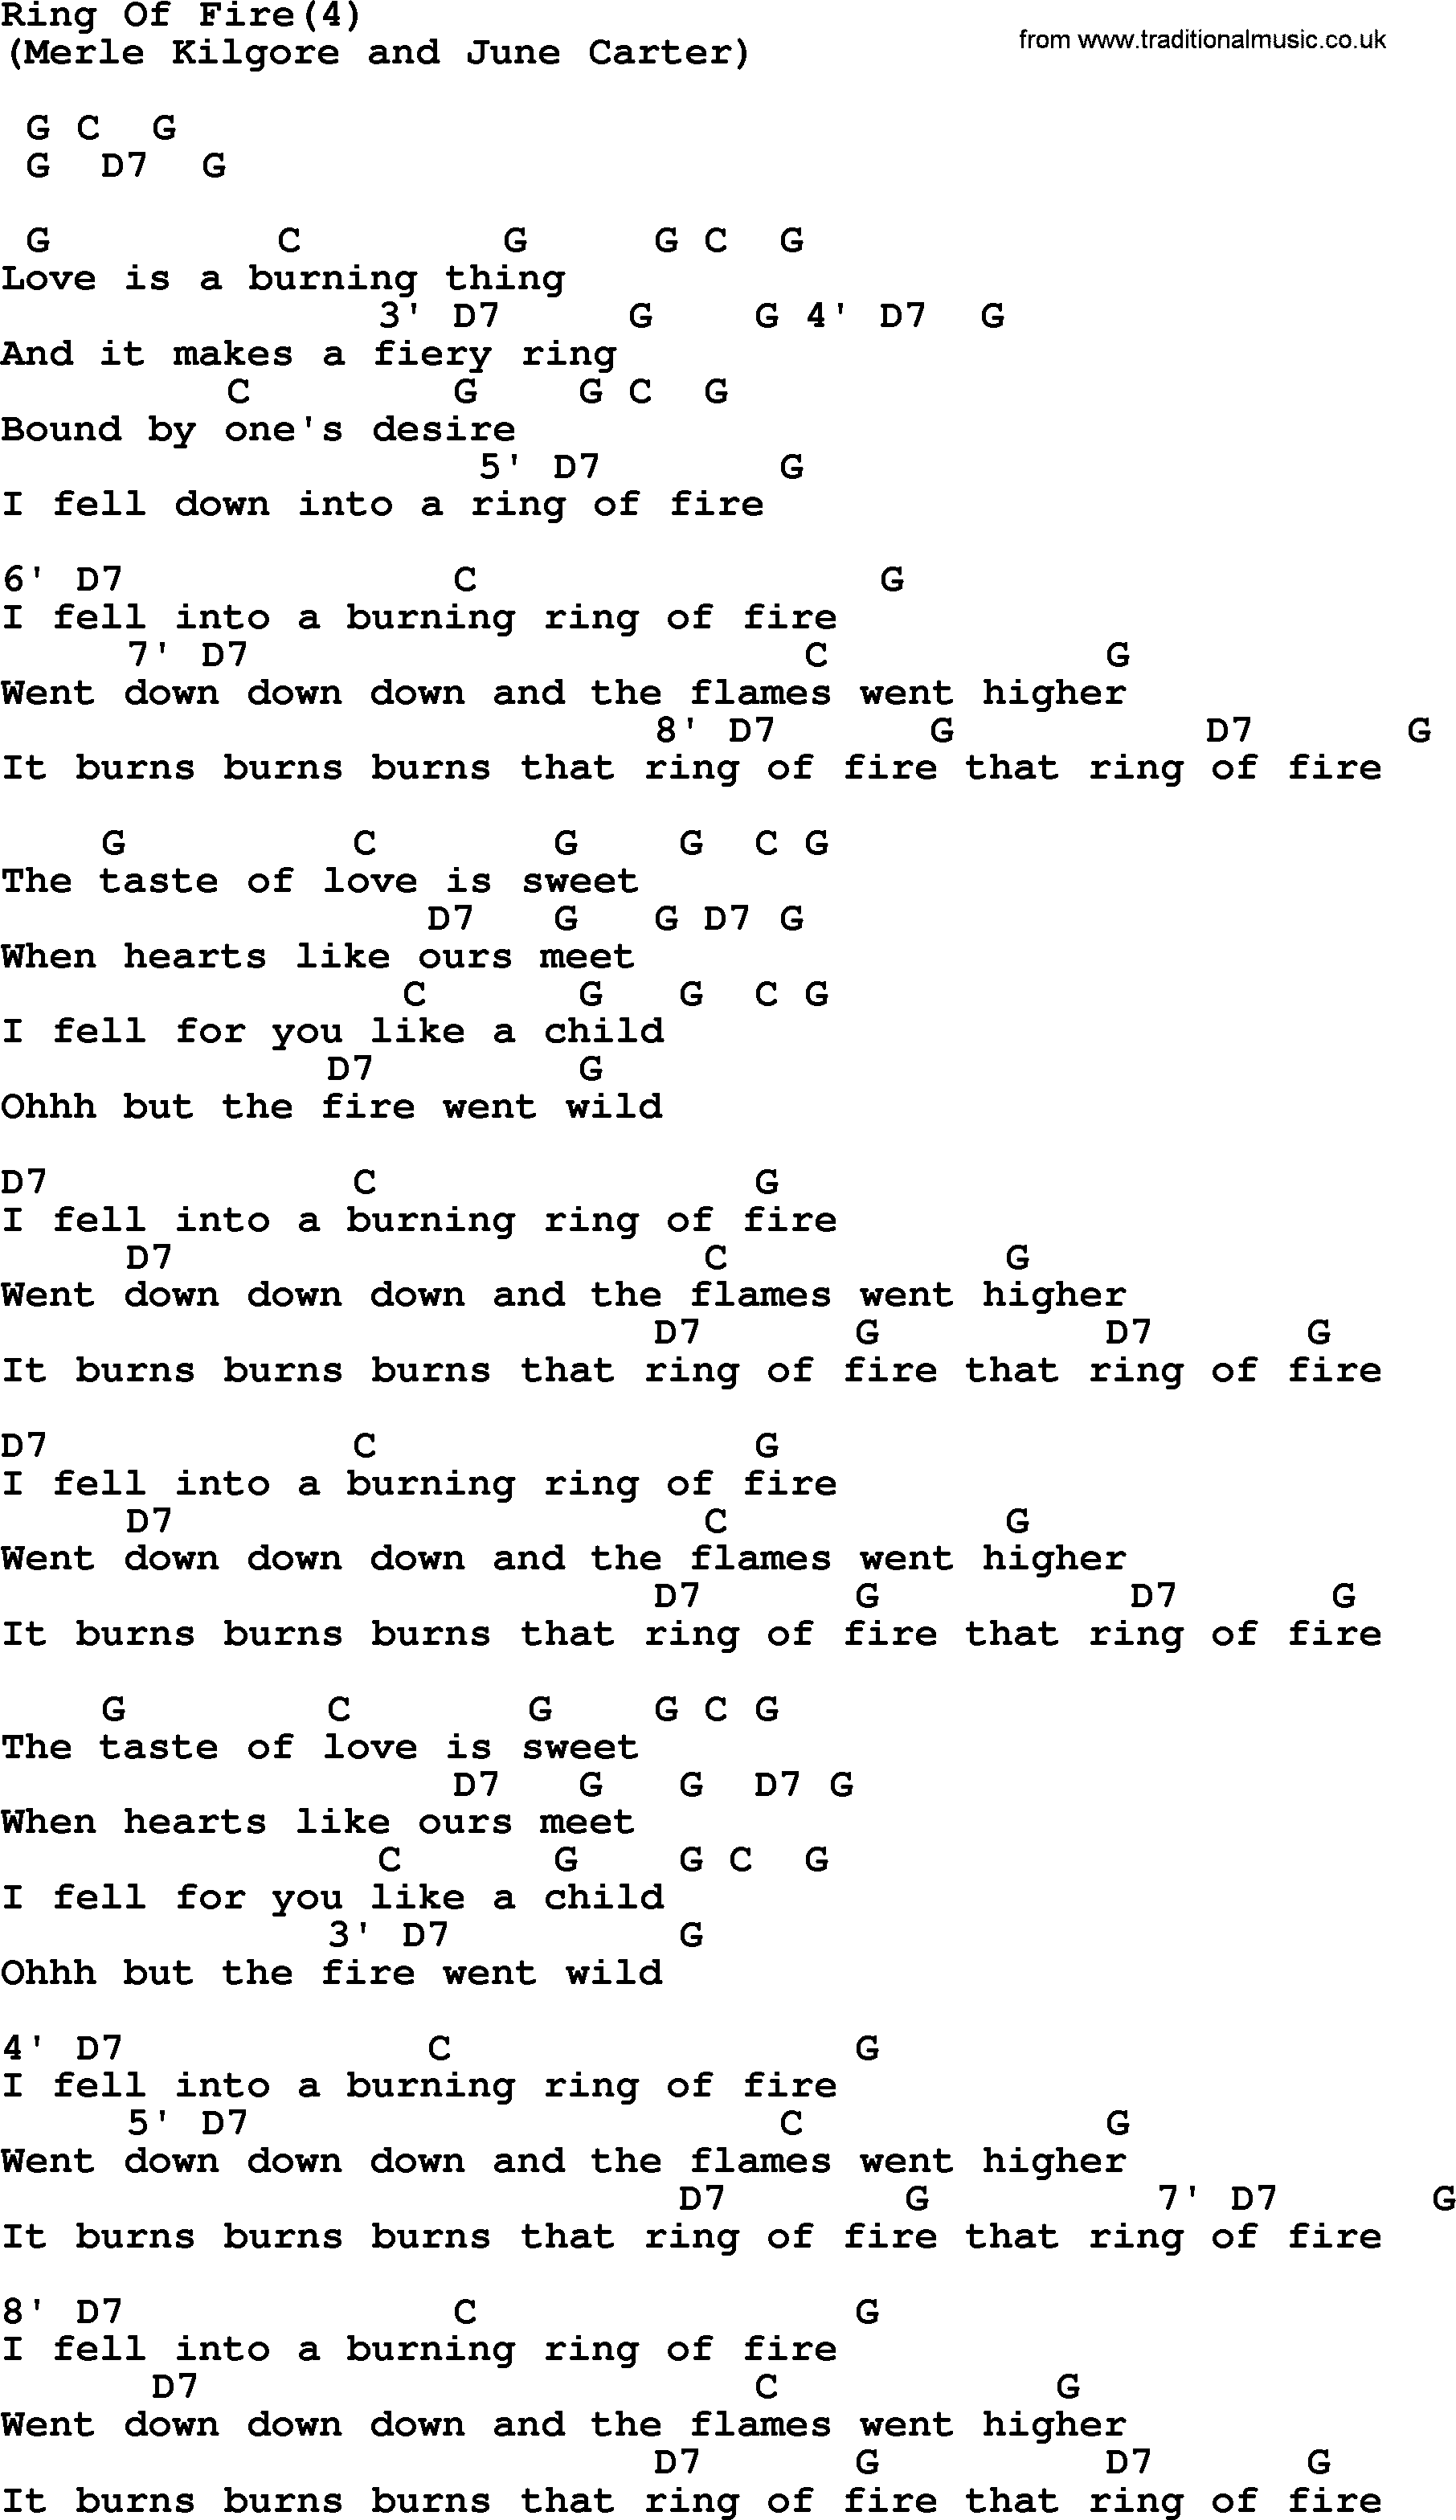 Johnny Cash song: Ring Of Fire(4), lyrics and chords